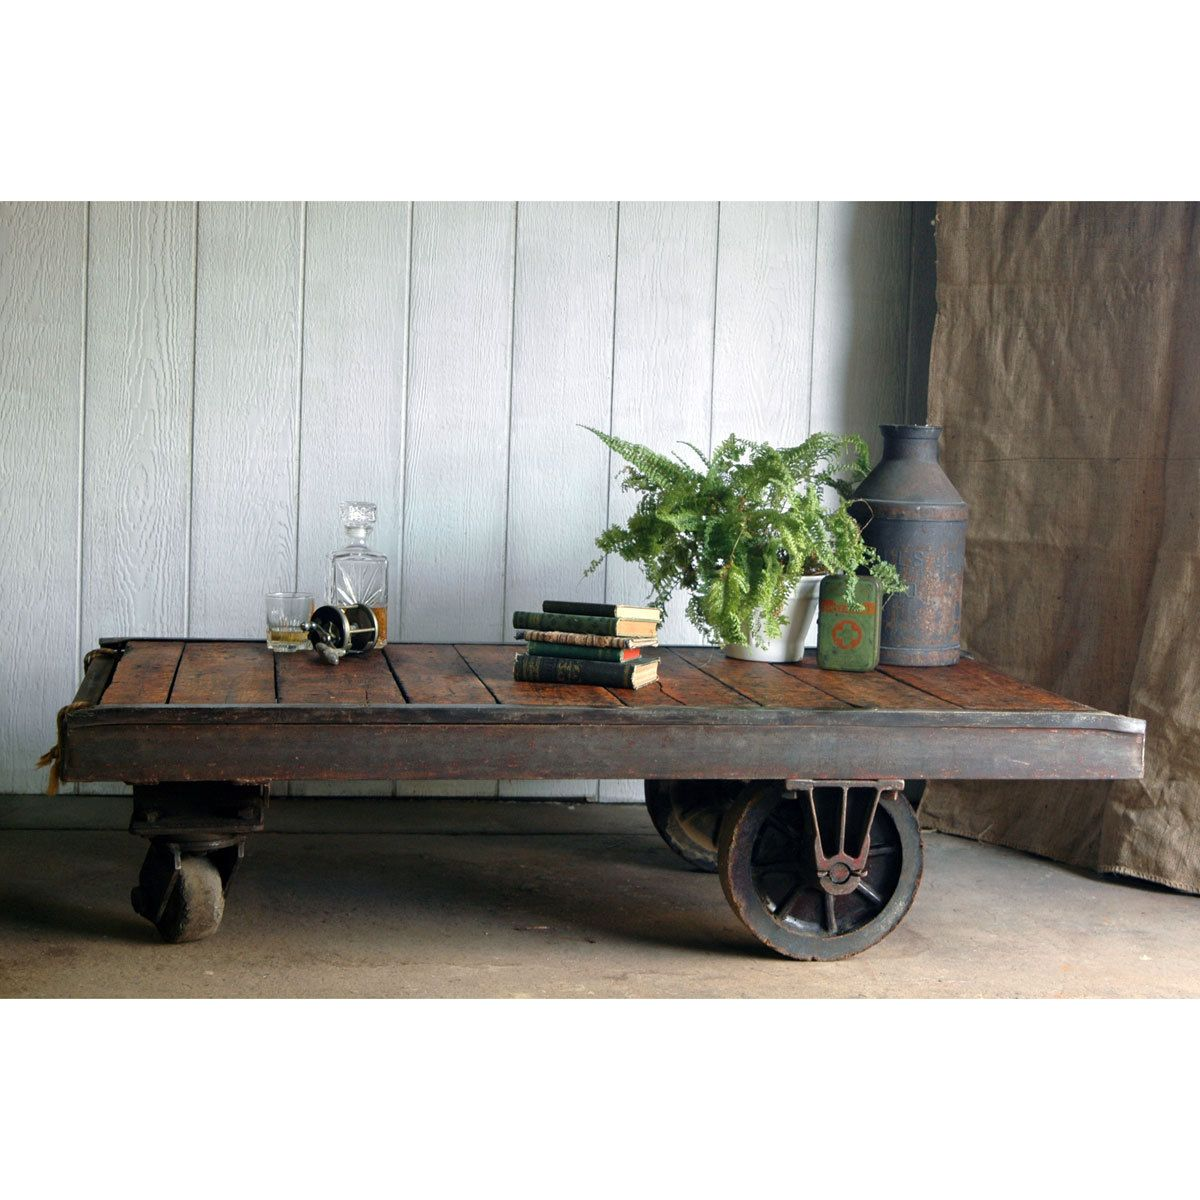 Factory Cart Coffee Table Trend In Minimalist Interior Design And Old Coffee  Table Ideas   Living Room Vintage Coffee Table